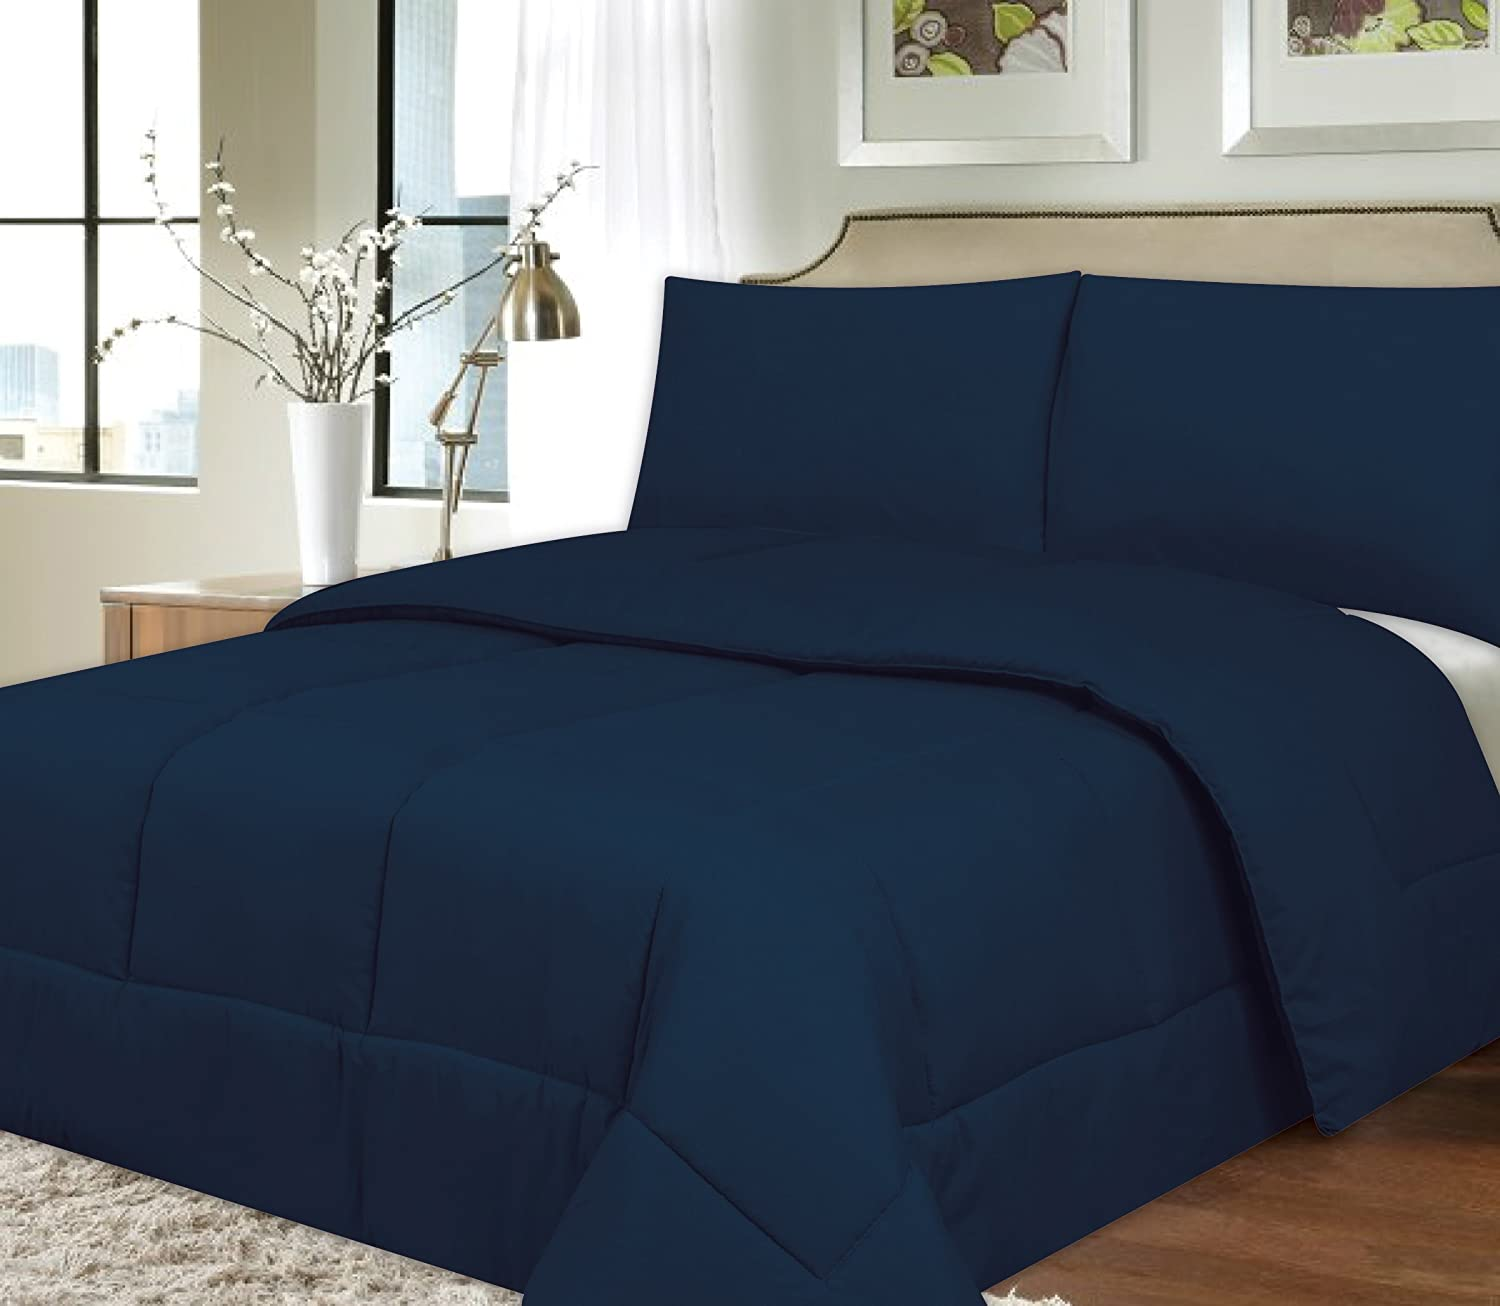 Sweet Home Collection Down Alternative Polyester Comforter Box Stitch Microfiber Bedding - Twin, Navy